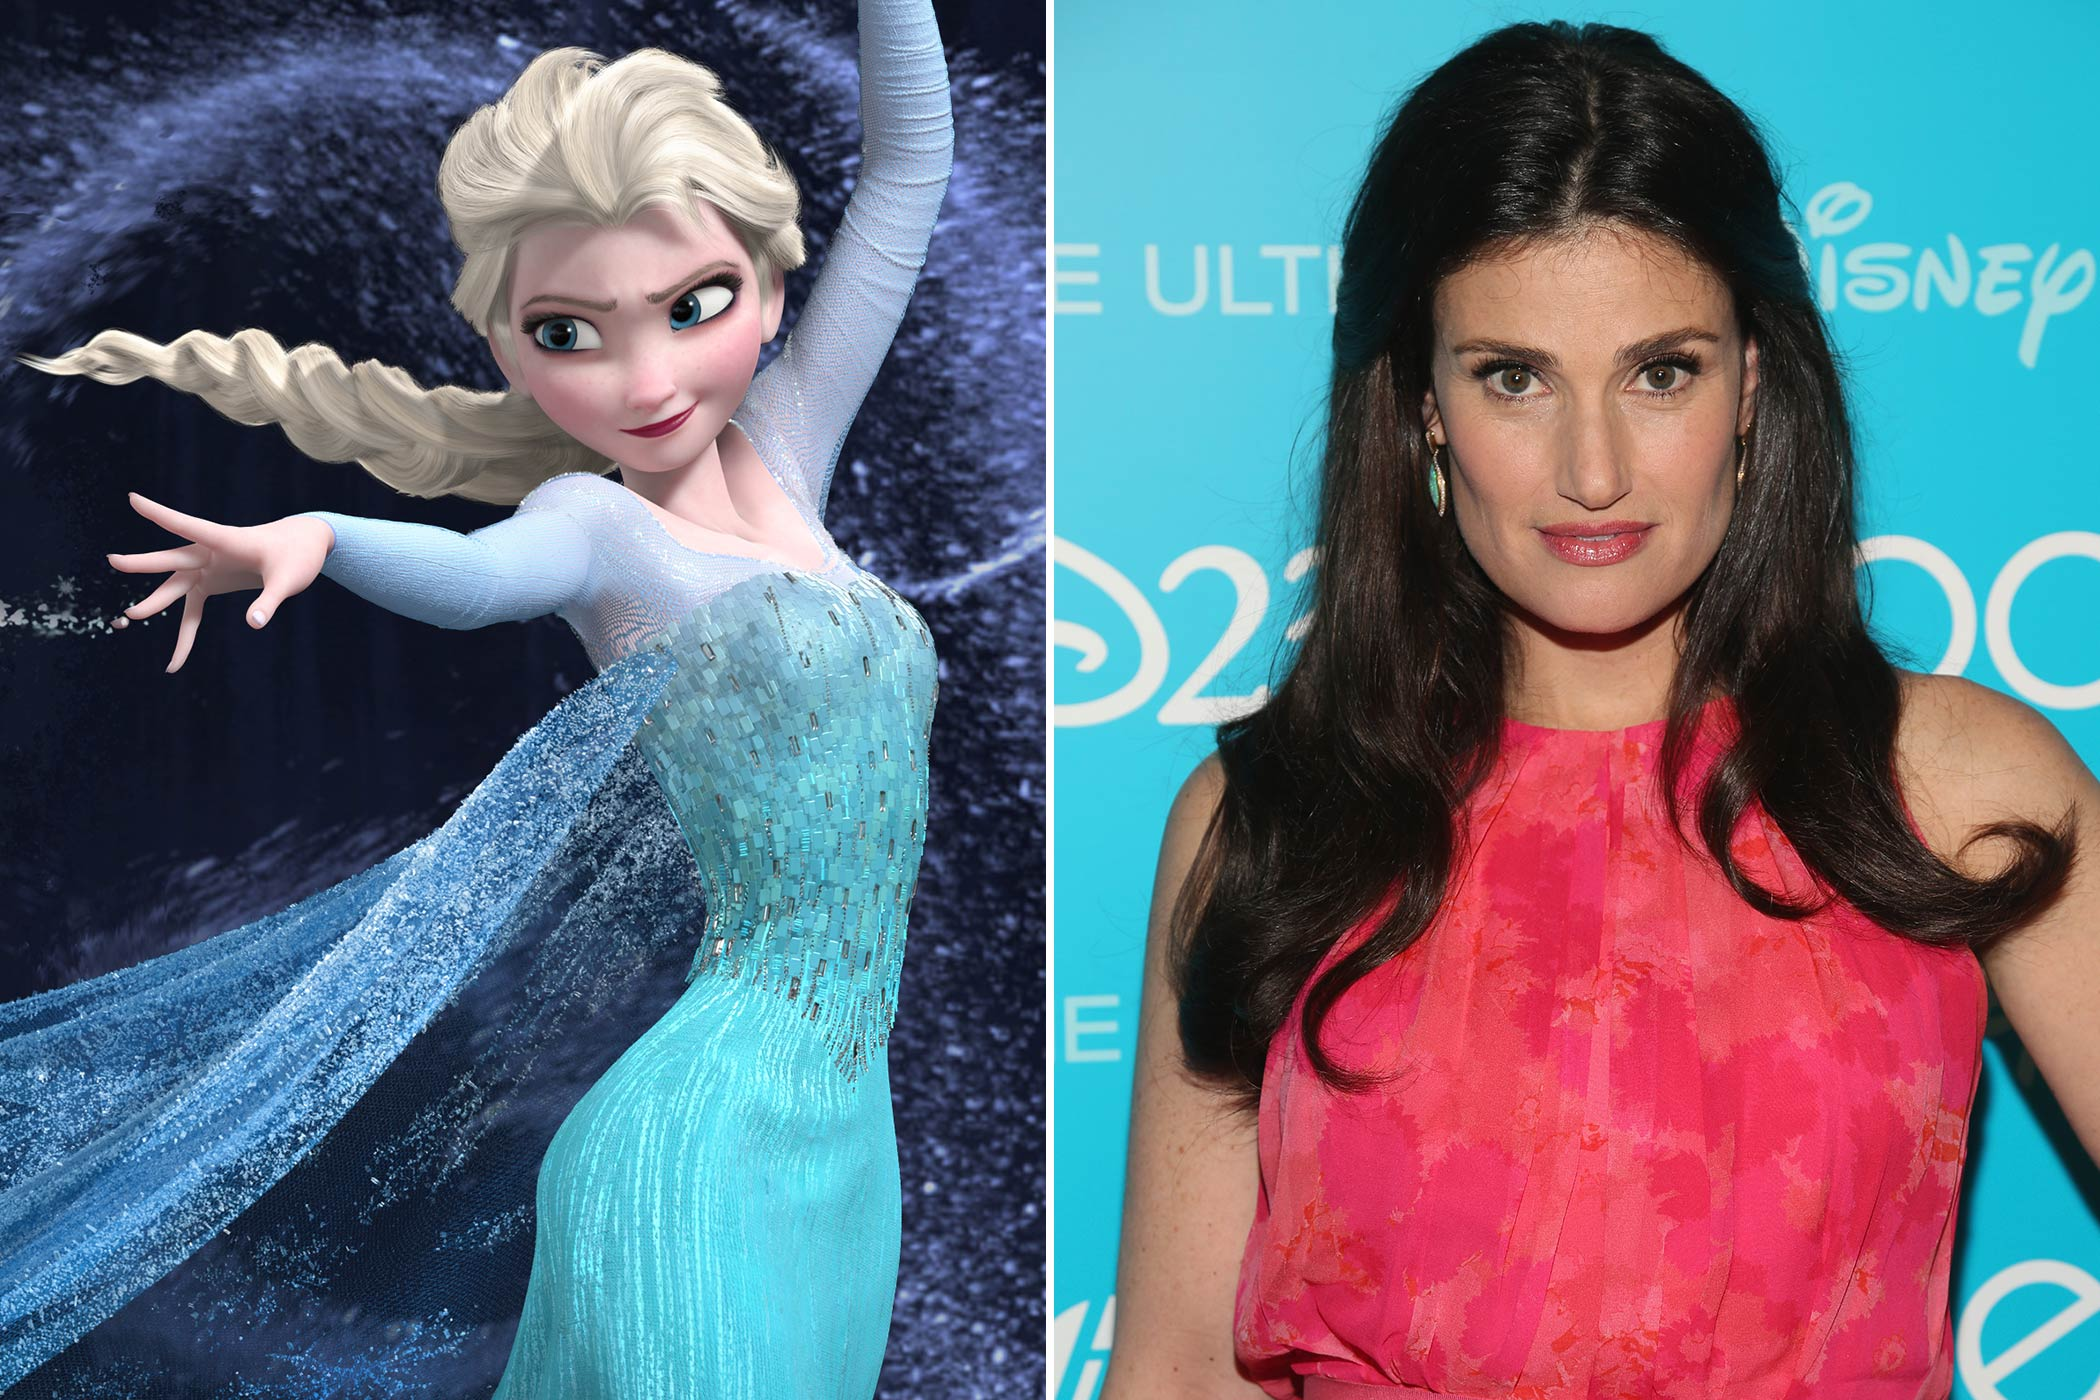 <strong>Elsa: Idina Menzel</strong>                                   Fans of Broadway and <i>Glee</i> will instantly recognize Idina Menzel. The storied thespian was part of the original casts of <i>Rent</i> and <i>Wicked</i> as Maureen Johnson and Elphaba respectively. She also played Shelby Corcoran, Rachel Berry's mother, in Glee. Like Anna, Elsa will not be officially known as a princess until the character is inducted at a later date.